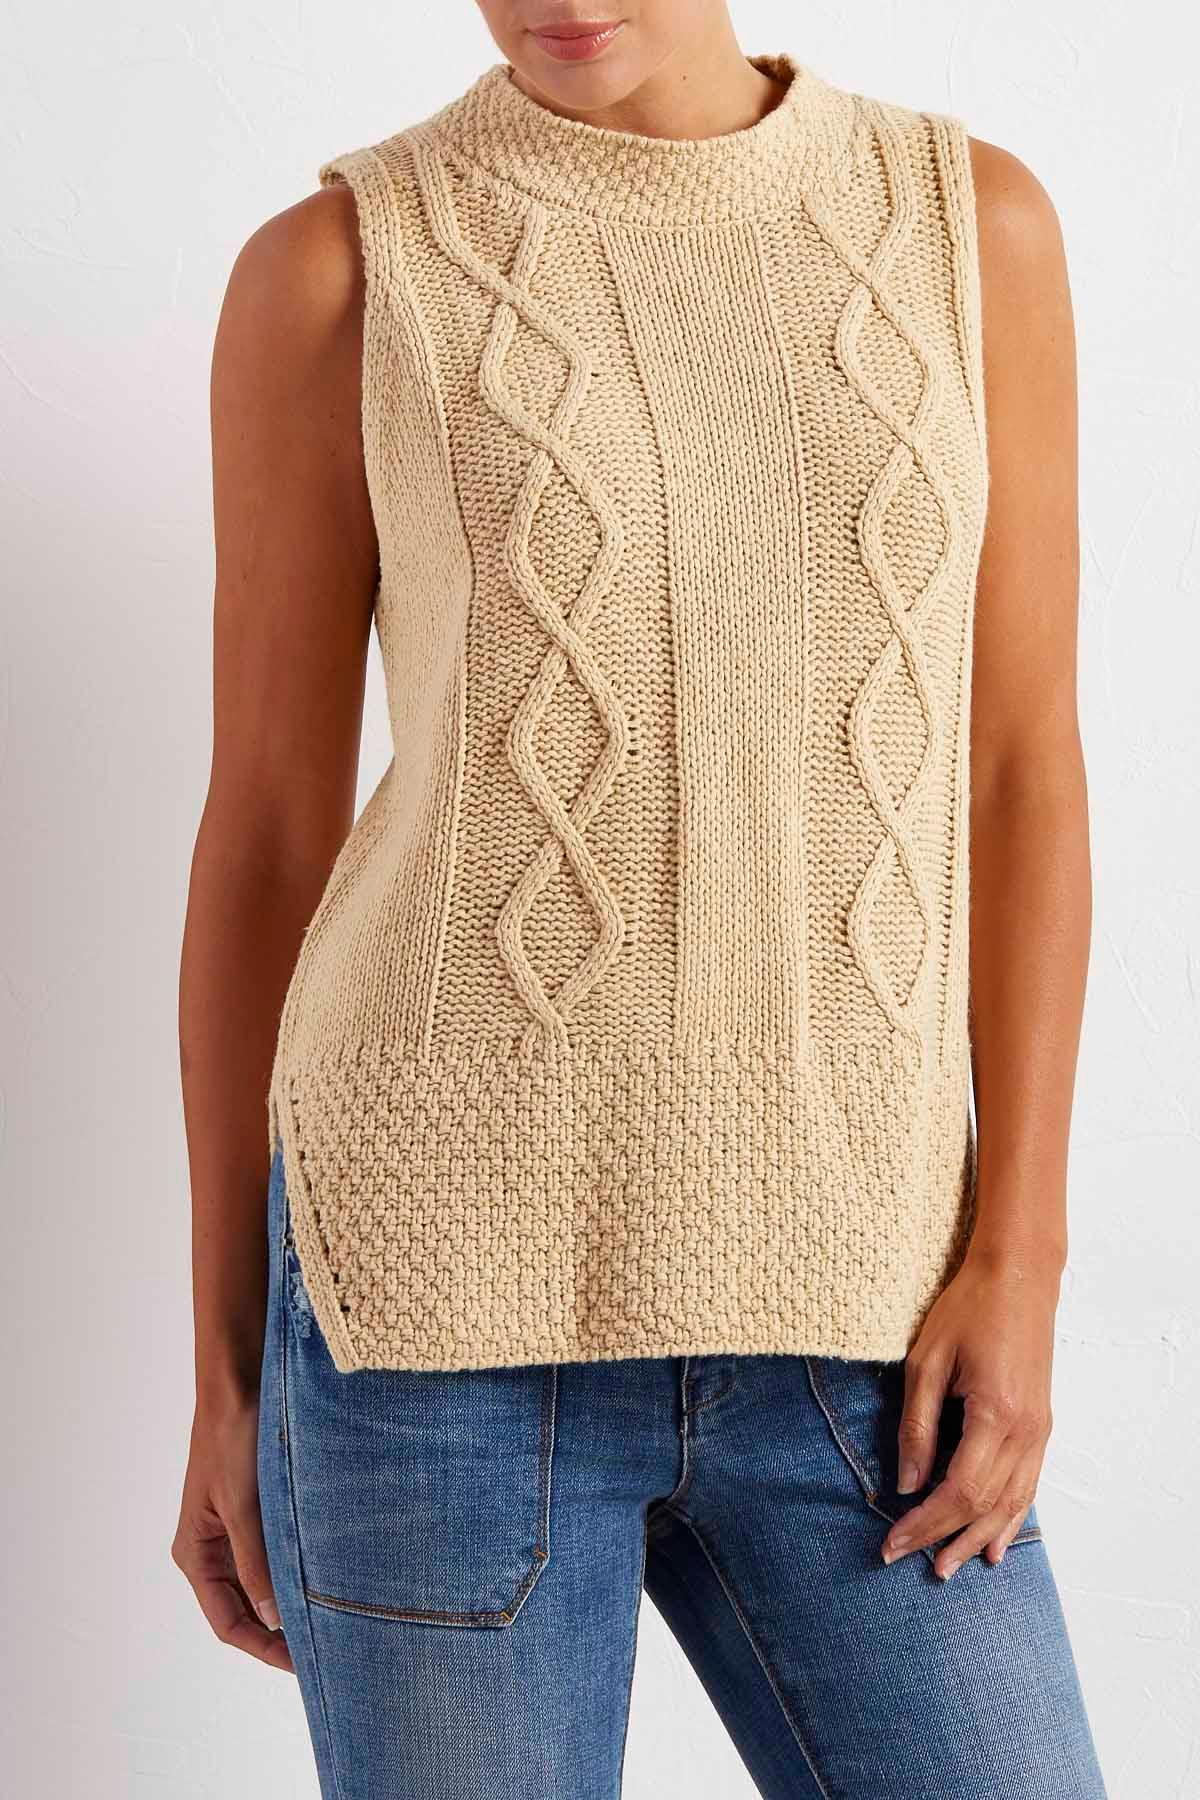 Cable Knit Criss Cross Back Sweater